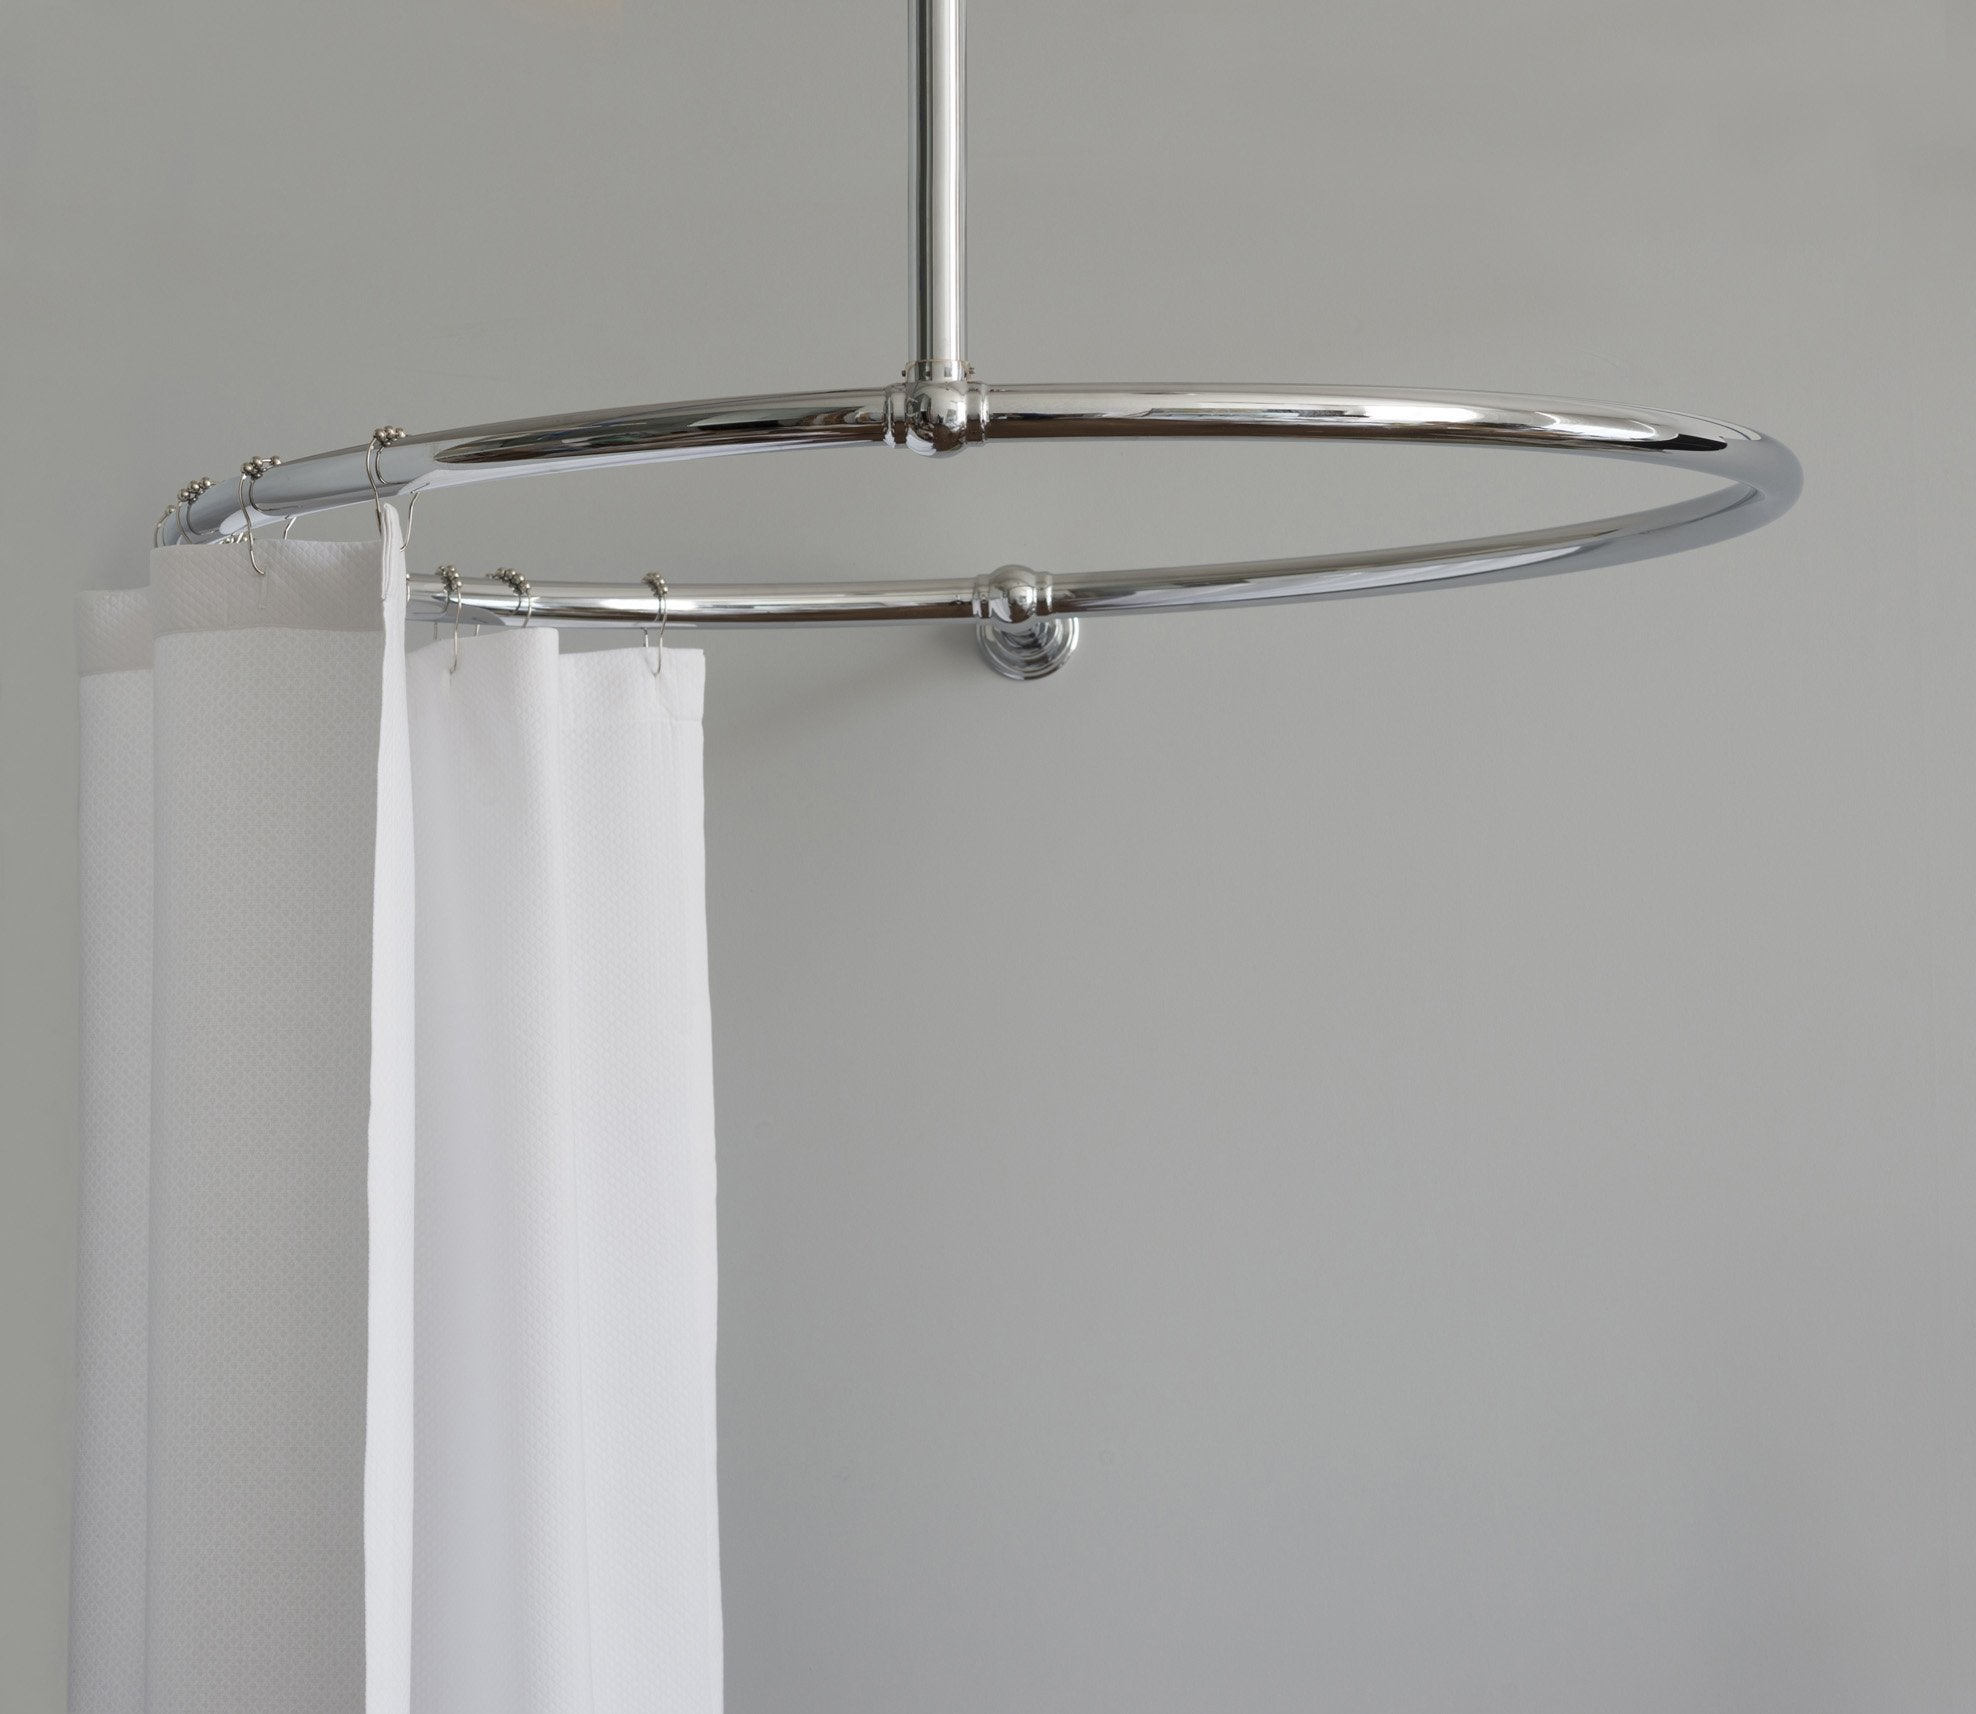 Shower Curtain Rail Round Rail Product Image 2